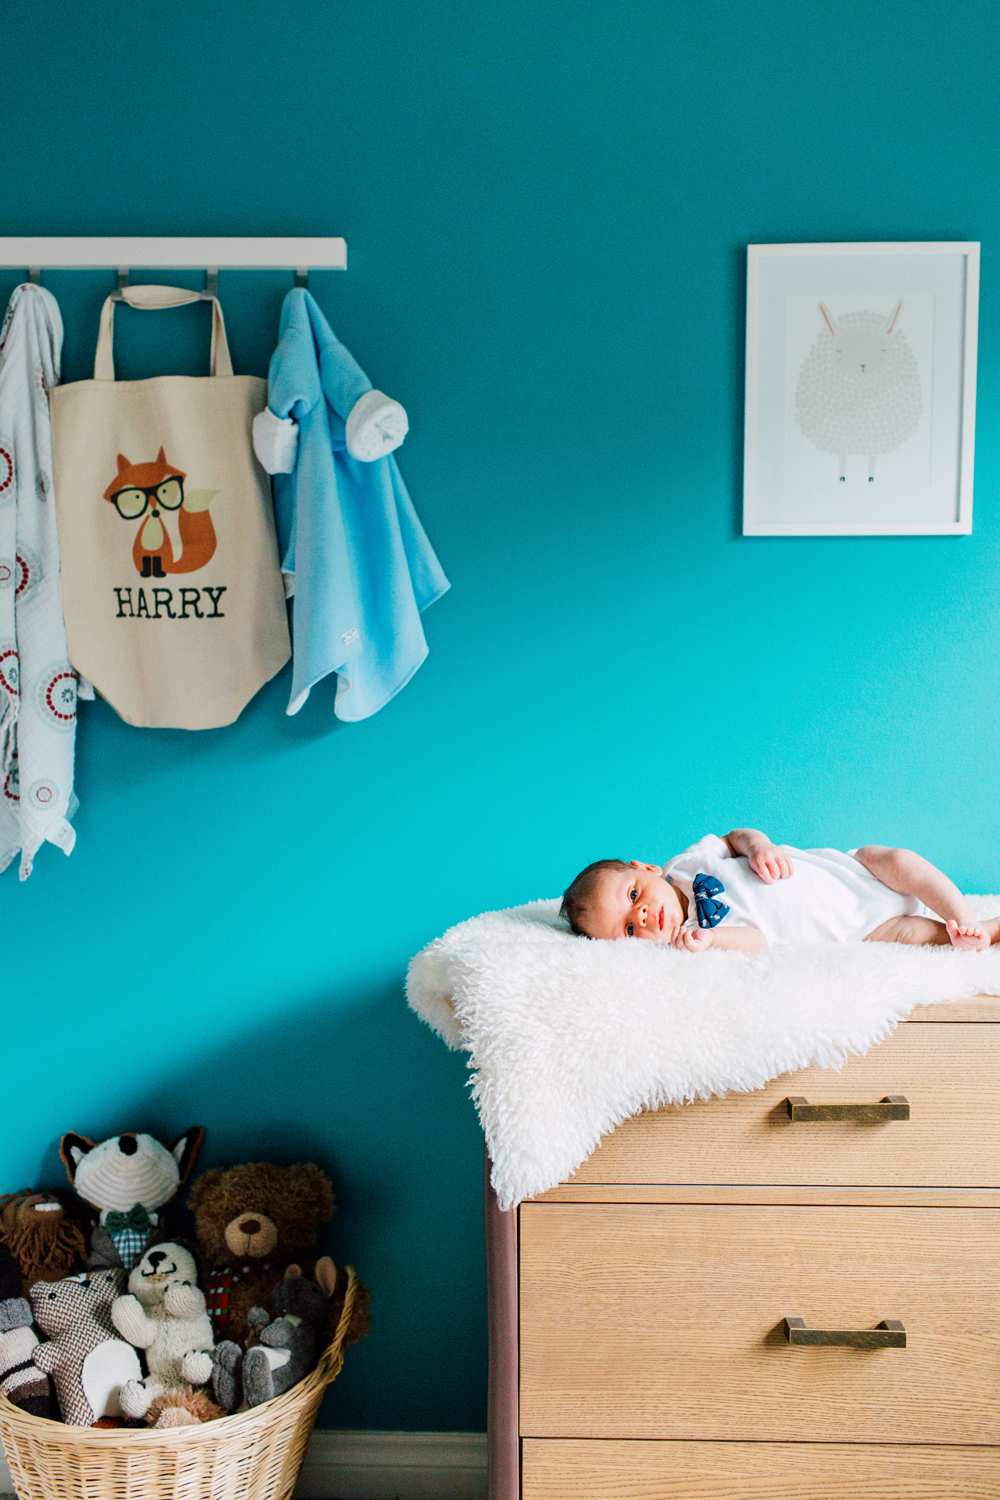 009-bellingham-family-newborn-photographer-katheryn-moran-fitts-family-baby-harry.jpg